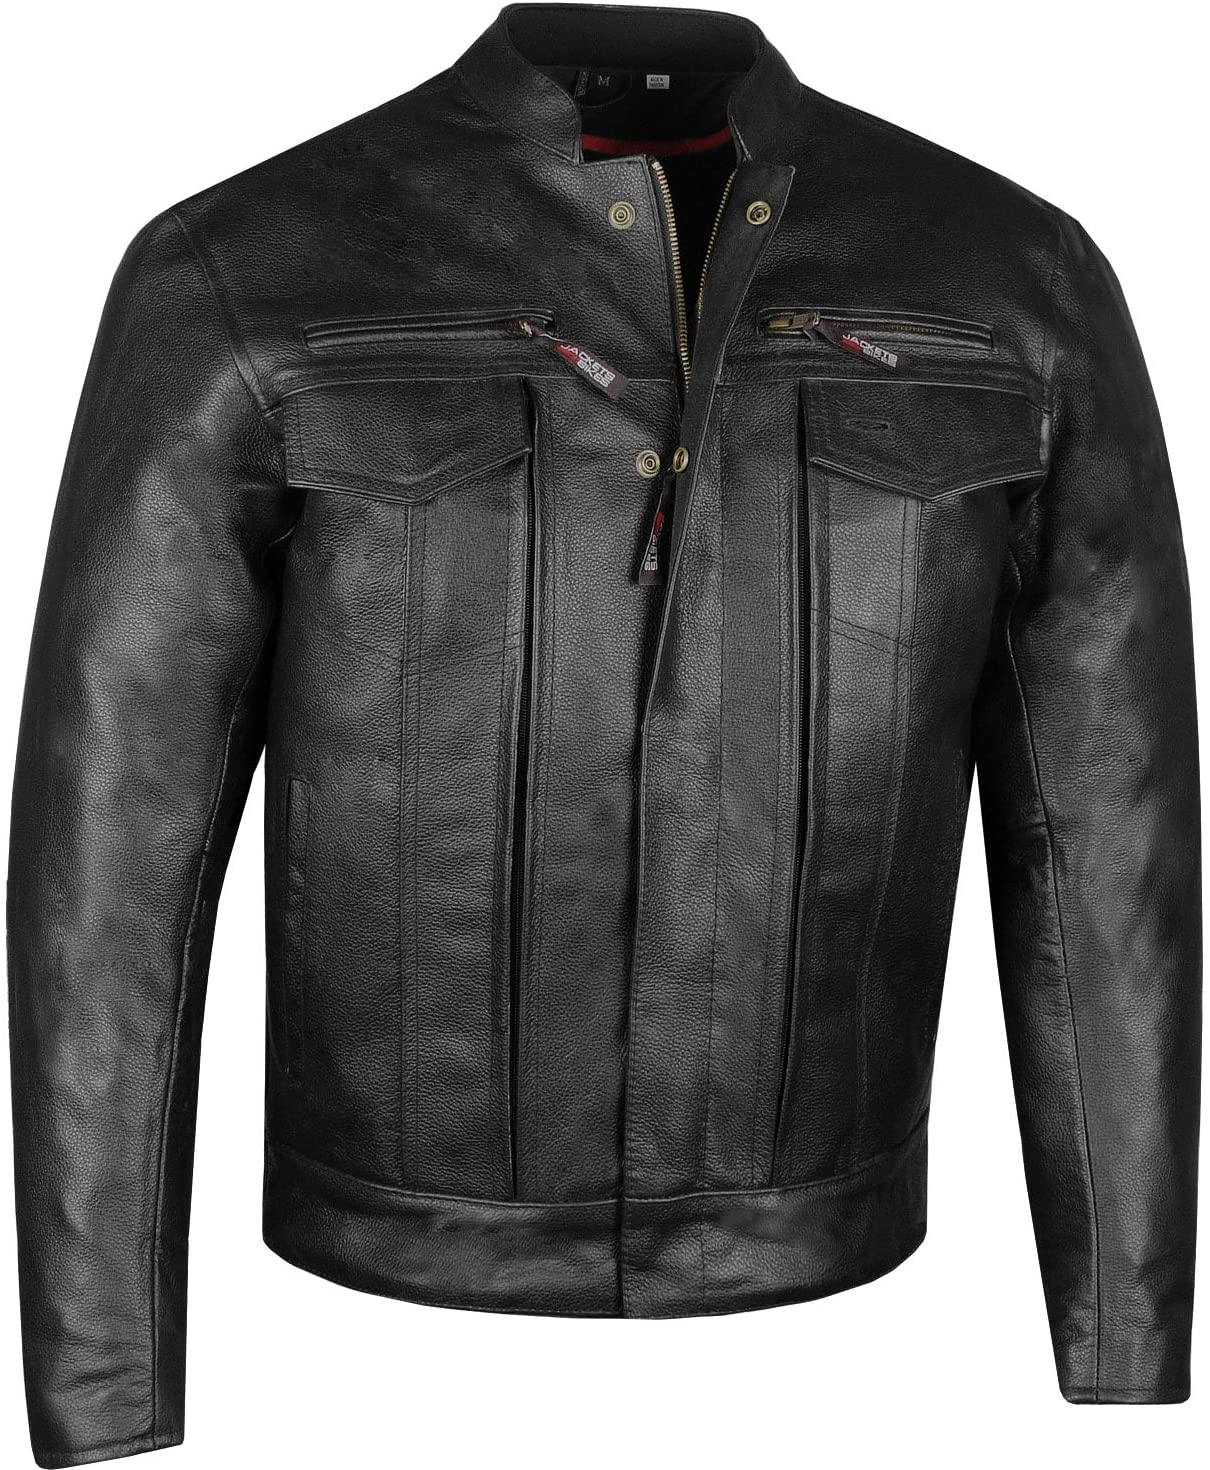 Men's Commuter 40% OFF Cheap Sale Premium Natural Armor Buffalo Leather Motorcycle Rapid rise